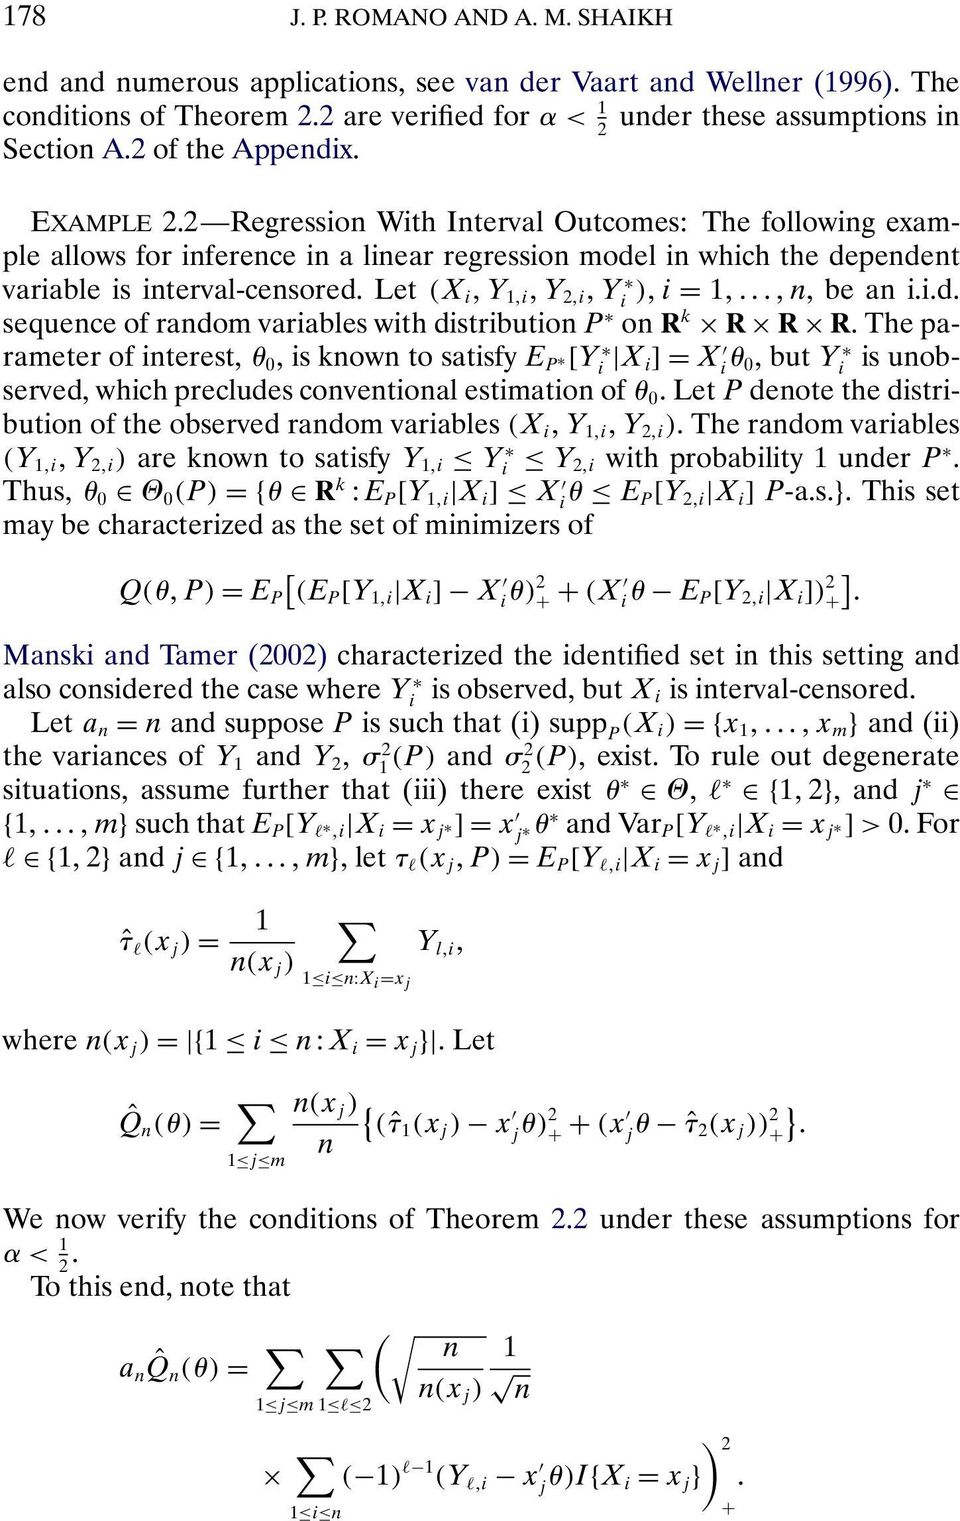 Let (X i Y 1 i Y 2 i Y i ) i = 1 n, be an i.i.d. sequence of random variables with distribution P on R k R R R.